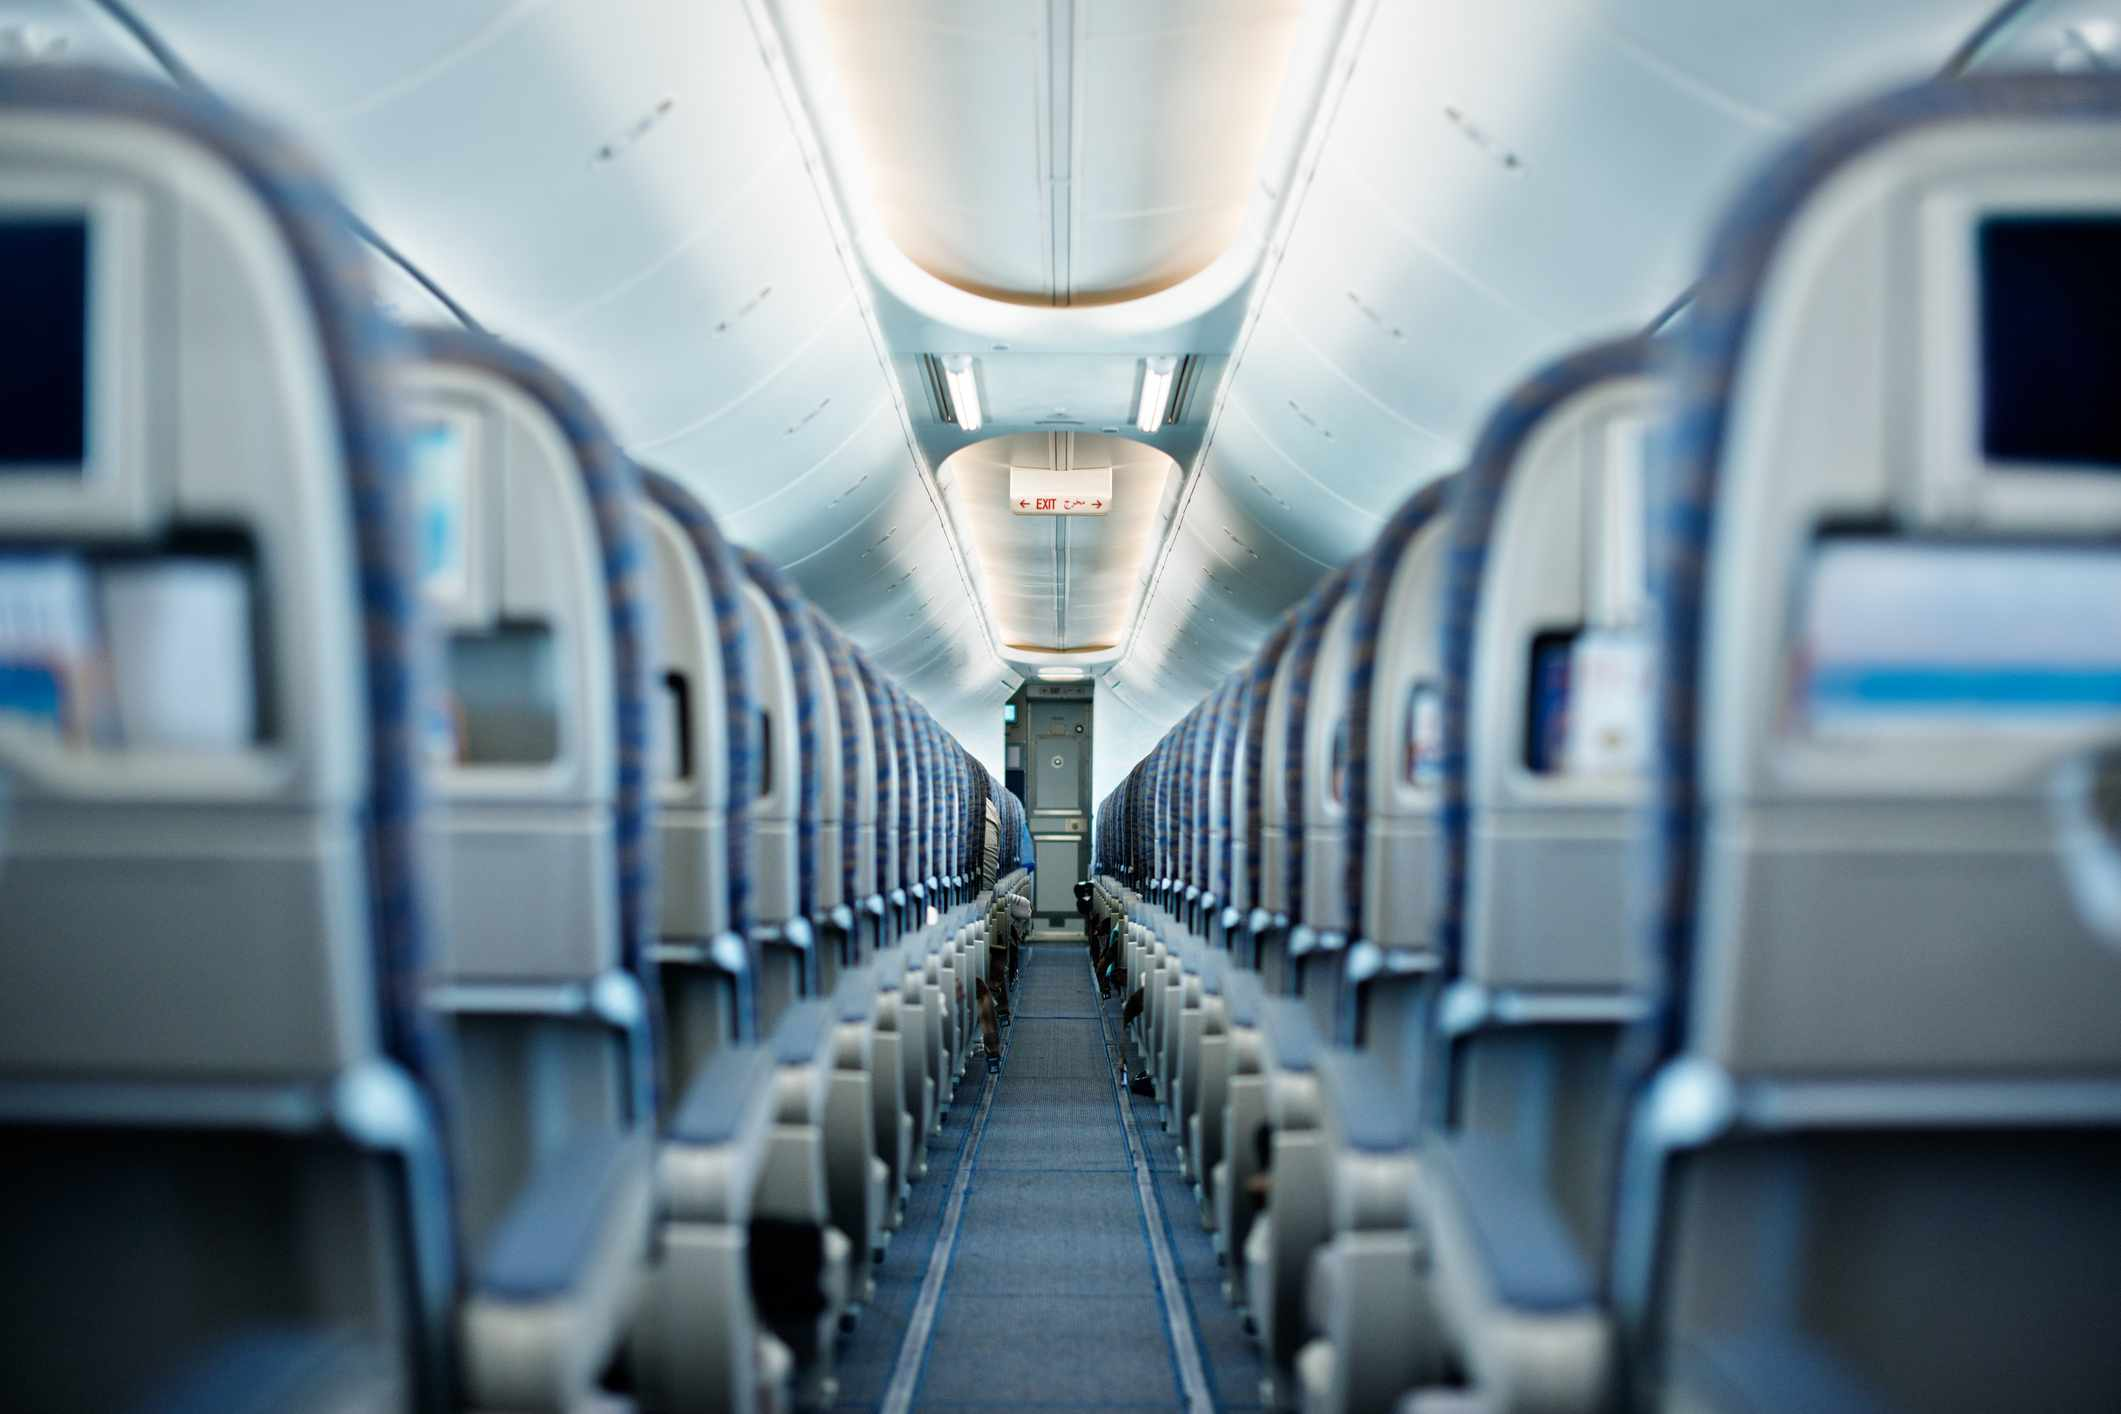 Why don't passenger seats on aircraft face backwards? © Getty Images